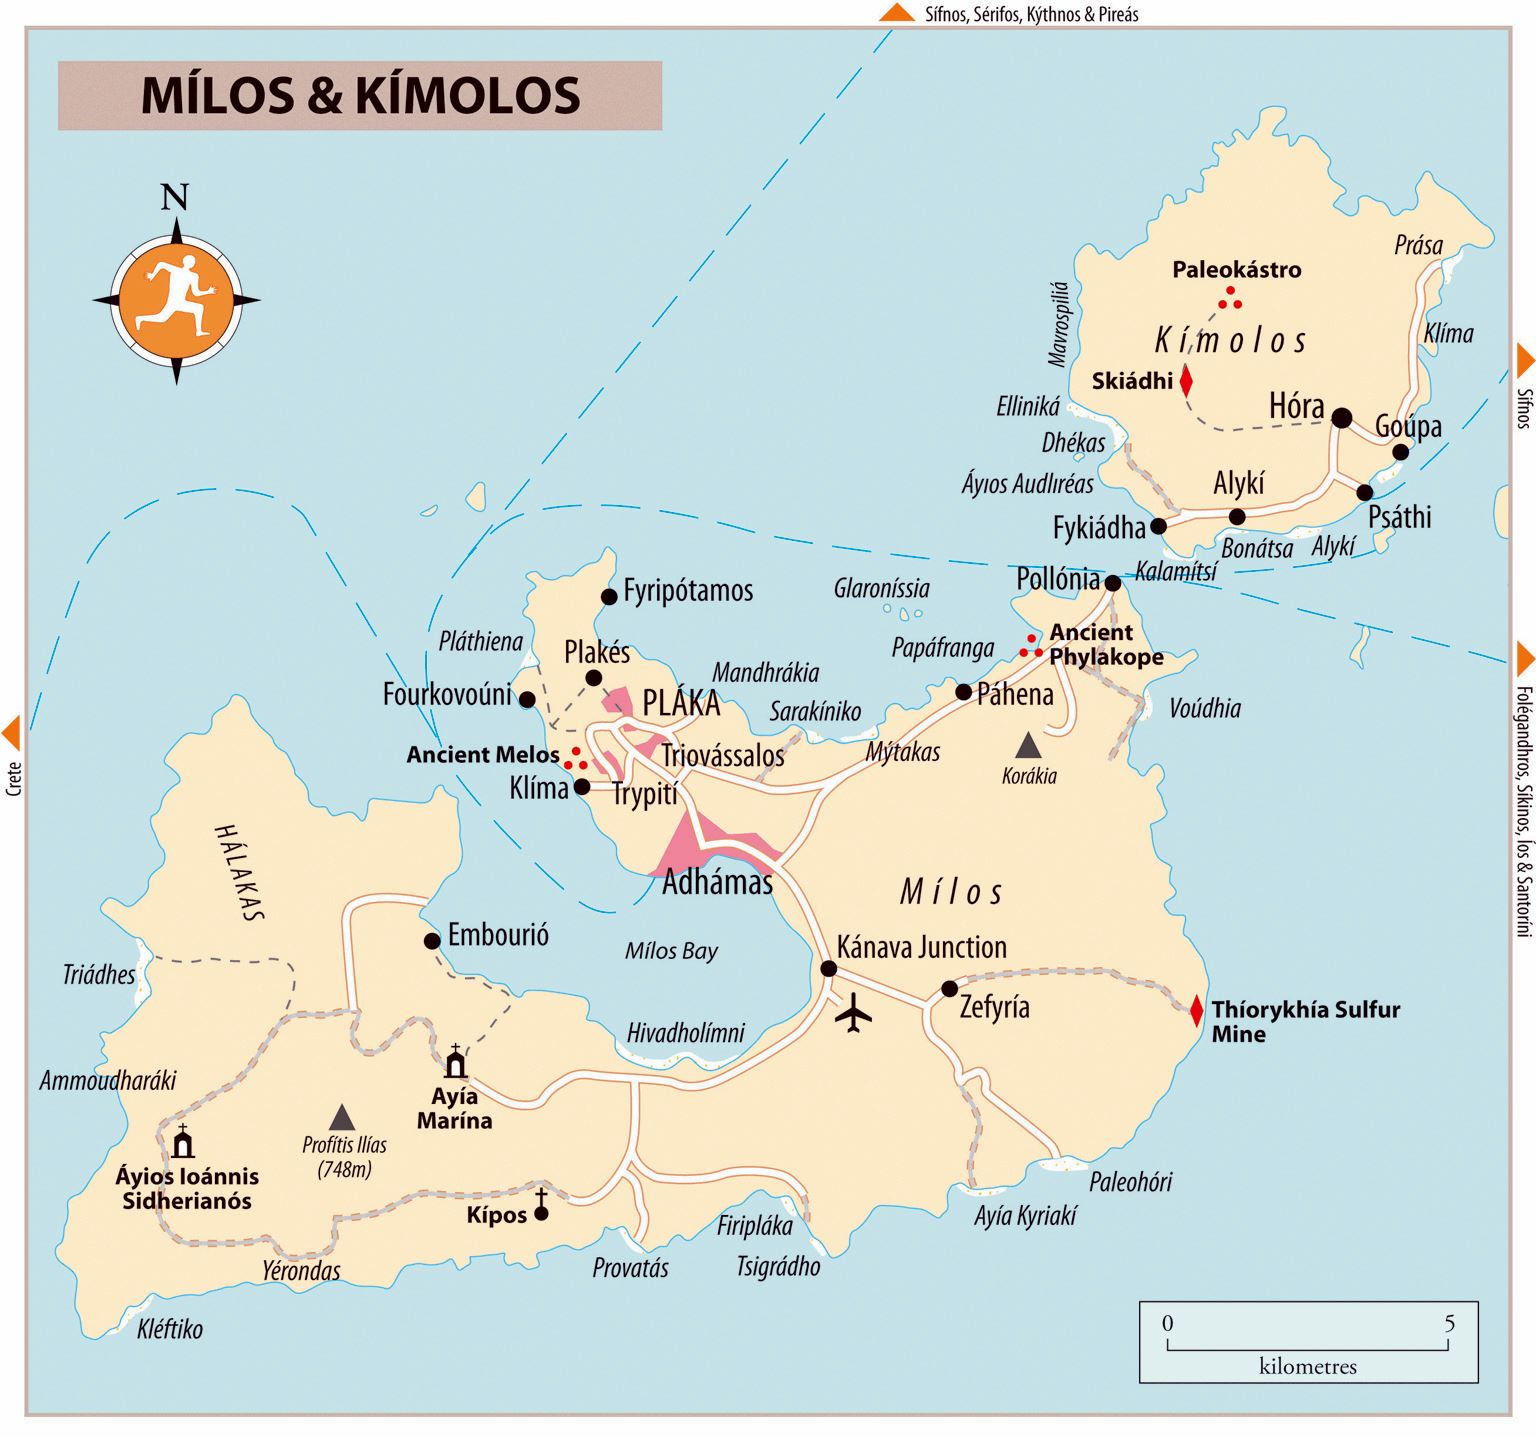 Large Milos Island Maps for Free Download and Print High